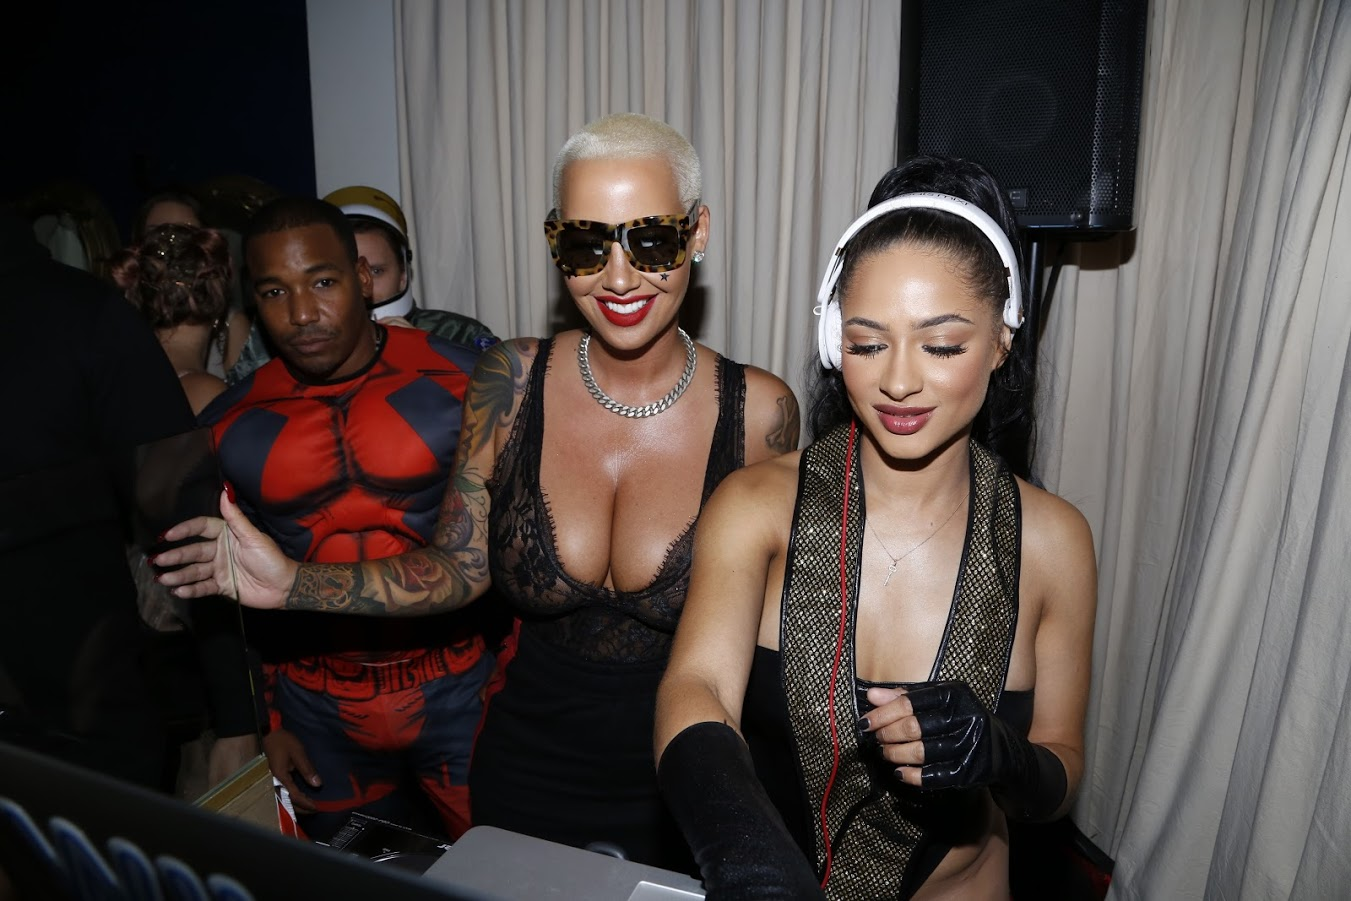 Tori Brixx Amber Rose Shore Bar in Santa Monica, California. (Photo by @ArnoldShoots)